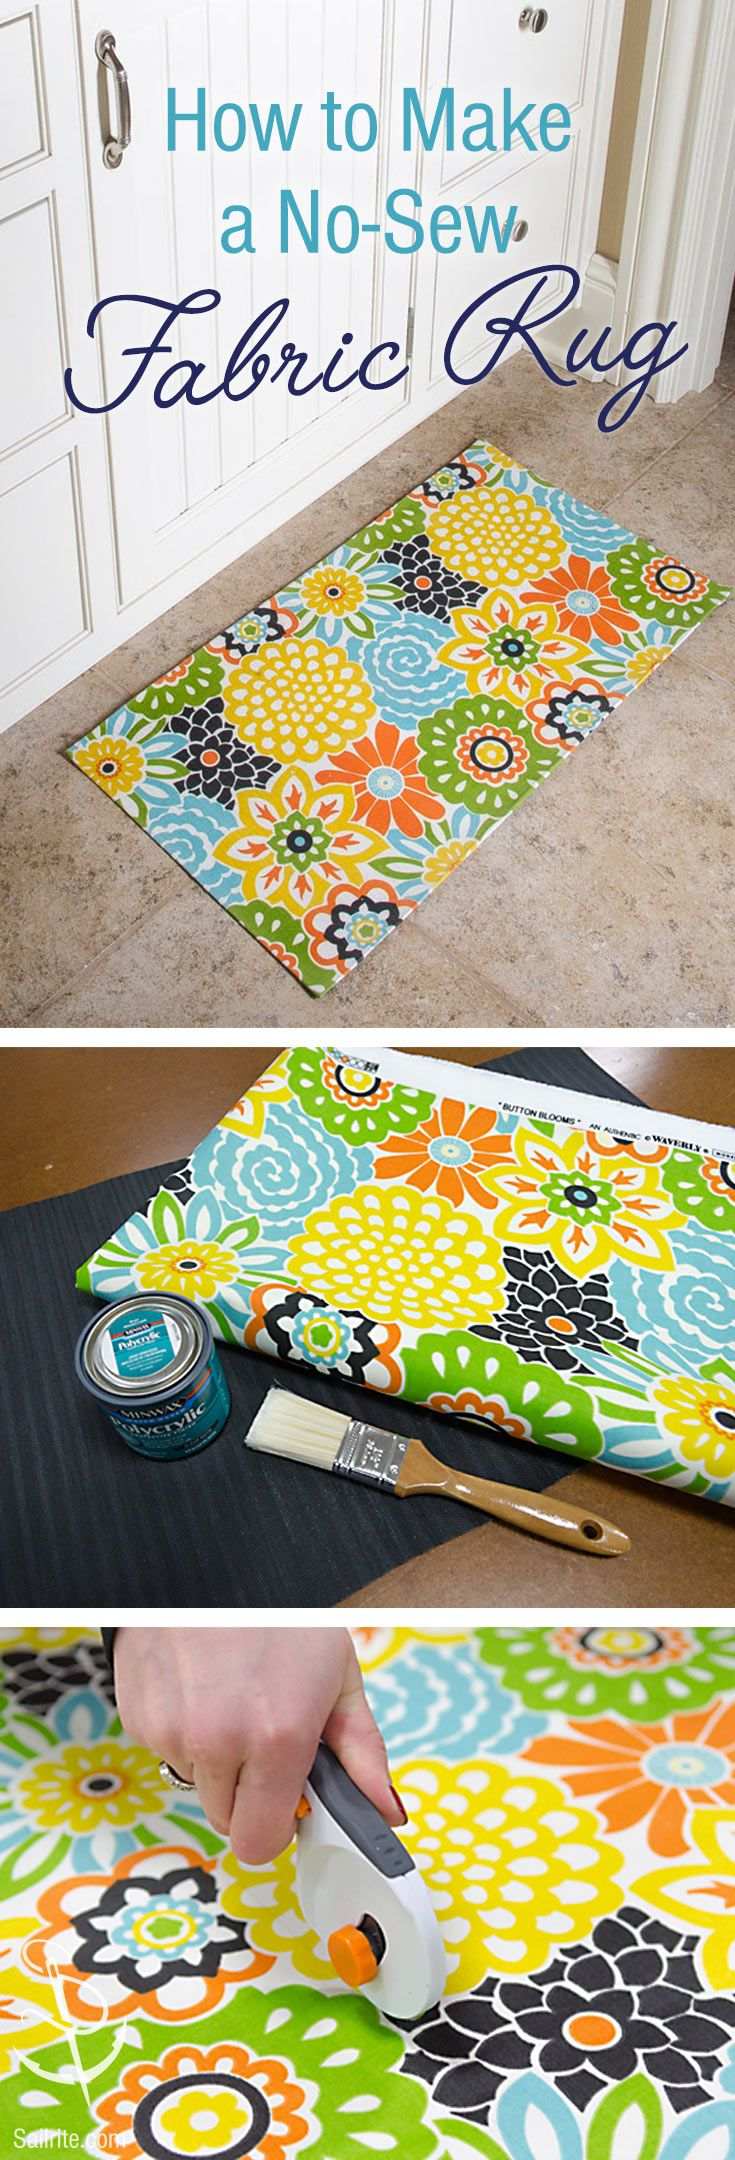 Add color to your home with this no-sew project. DIY a doormat or bathroom or kitchen rug using fabric.